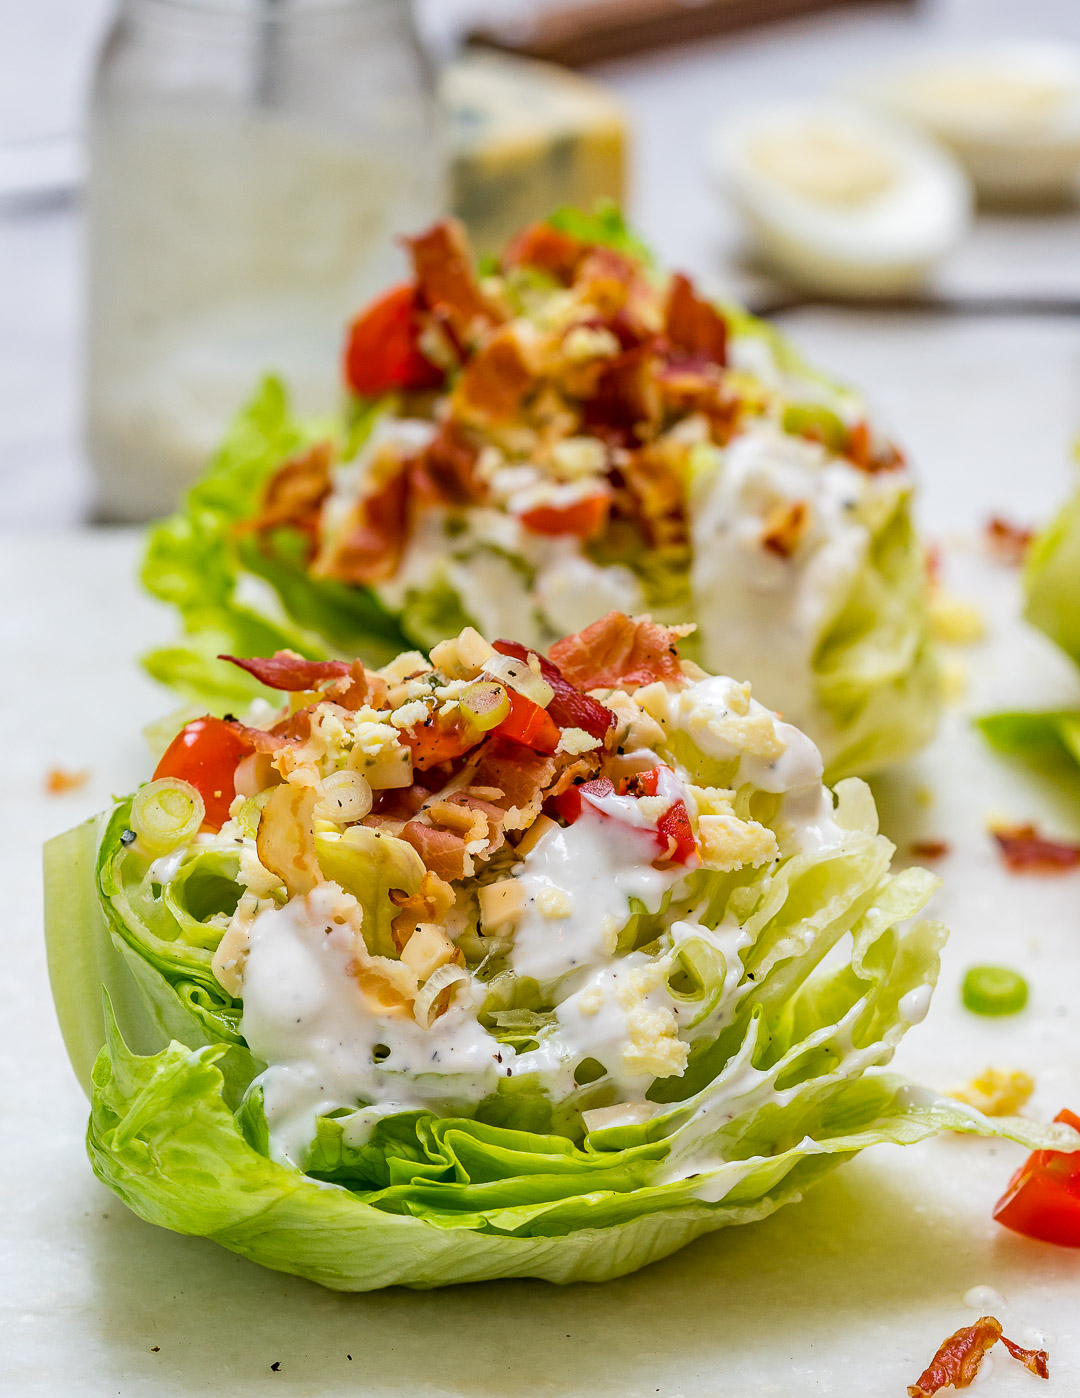 Loaded Iceberg Wedge Salad with Bluecheese Dressing Clean Recipe